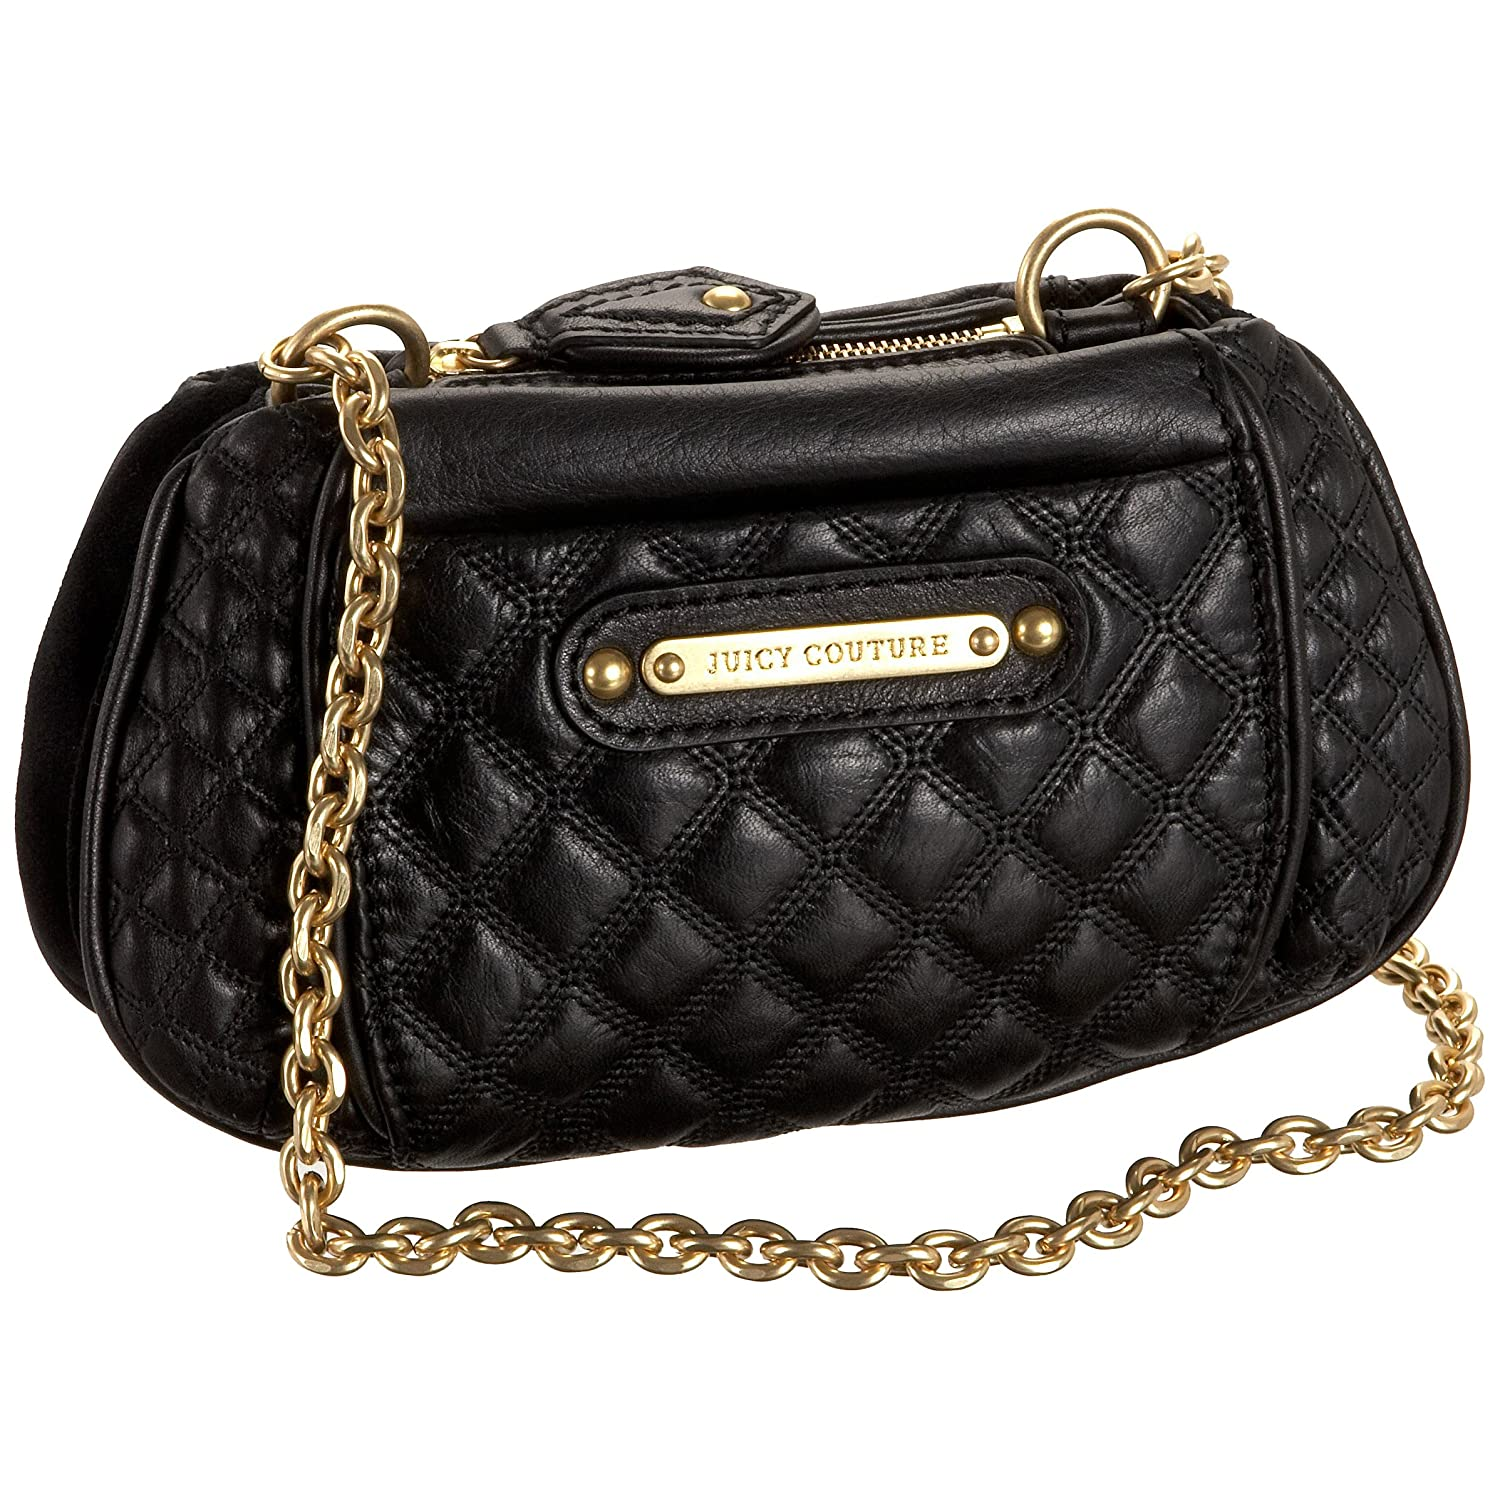 Juicy Couture Collection Quilted Leather Mini Cross-Body :  leather bag juicy couture bag quilted purse